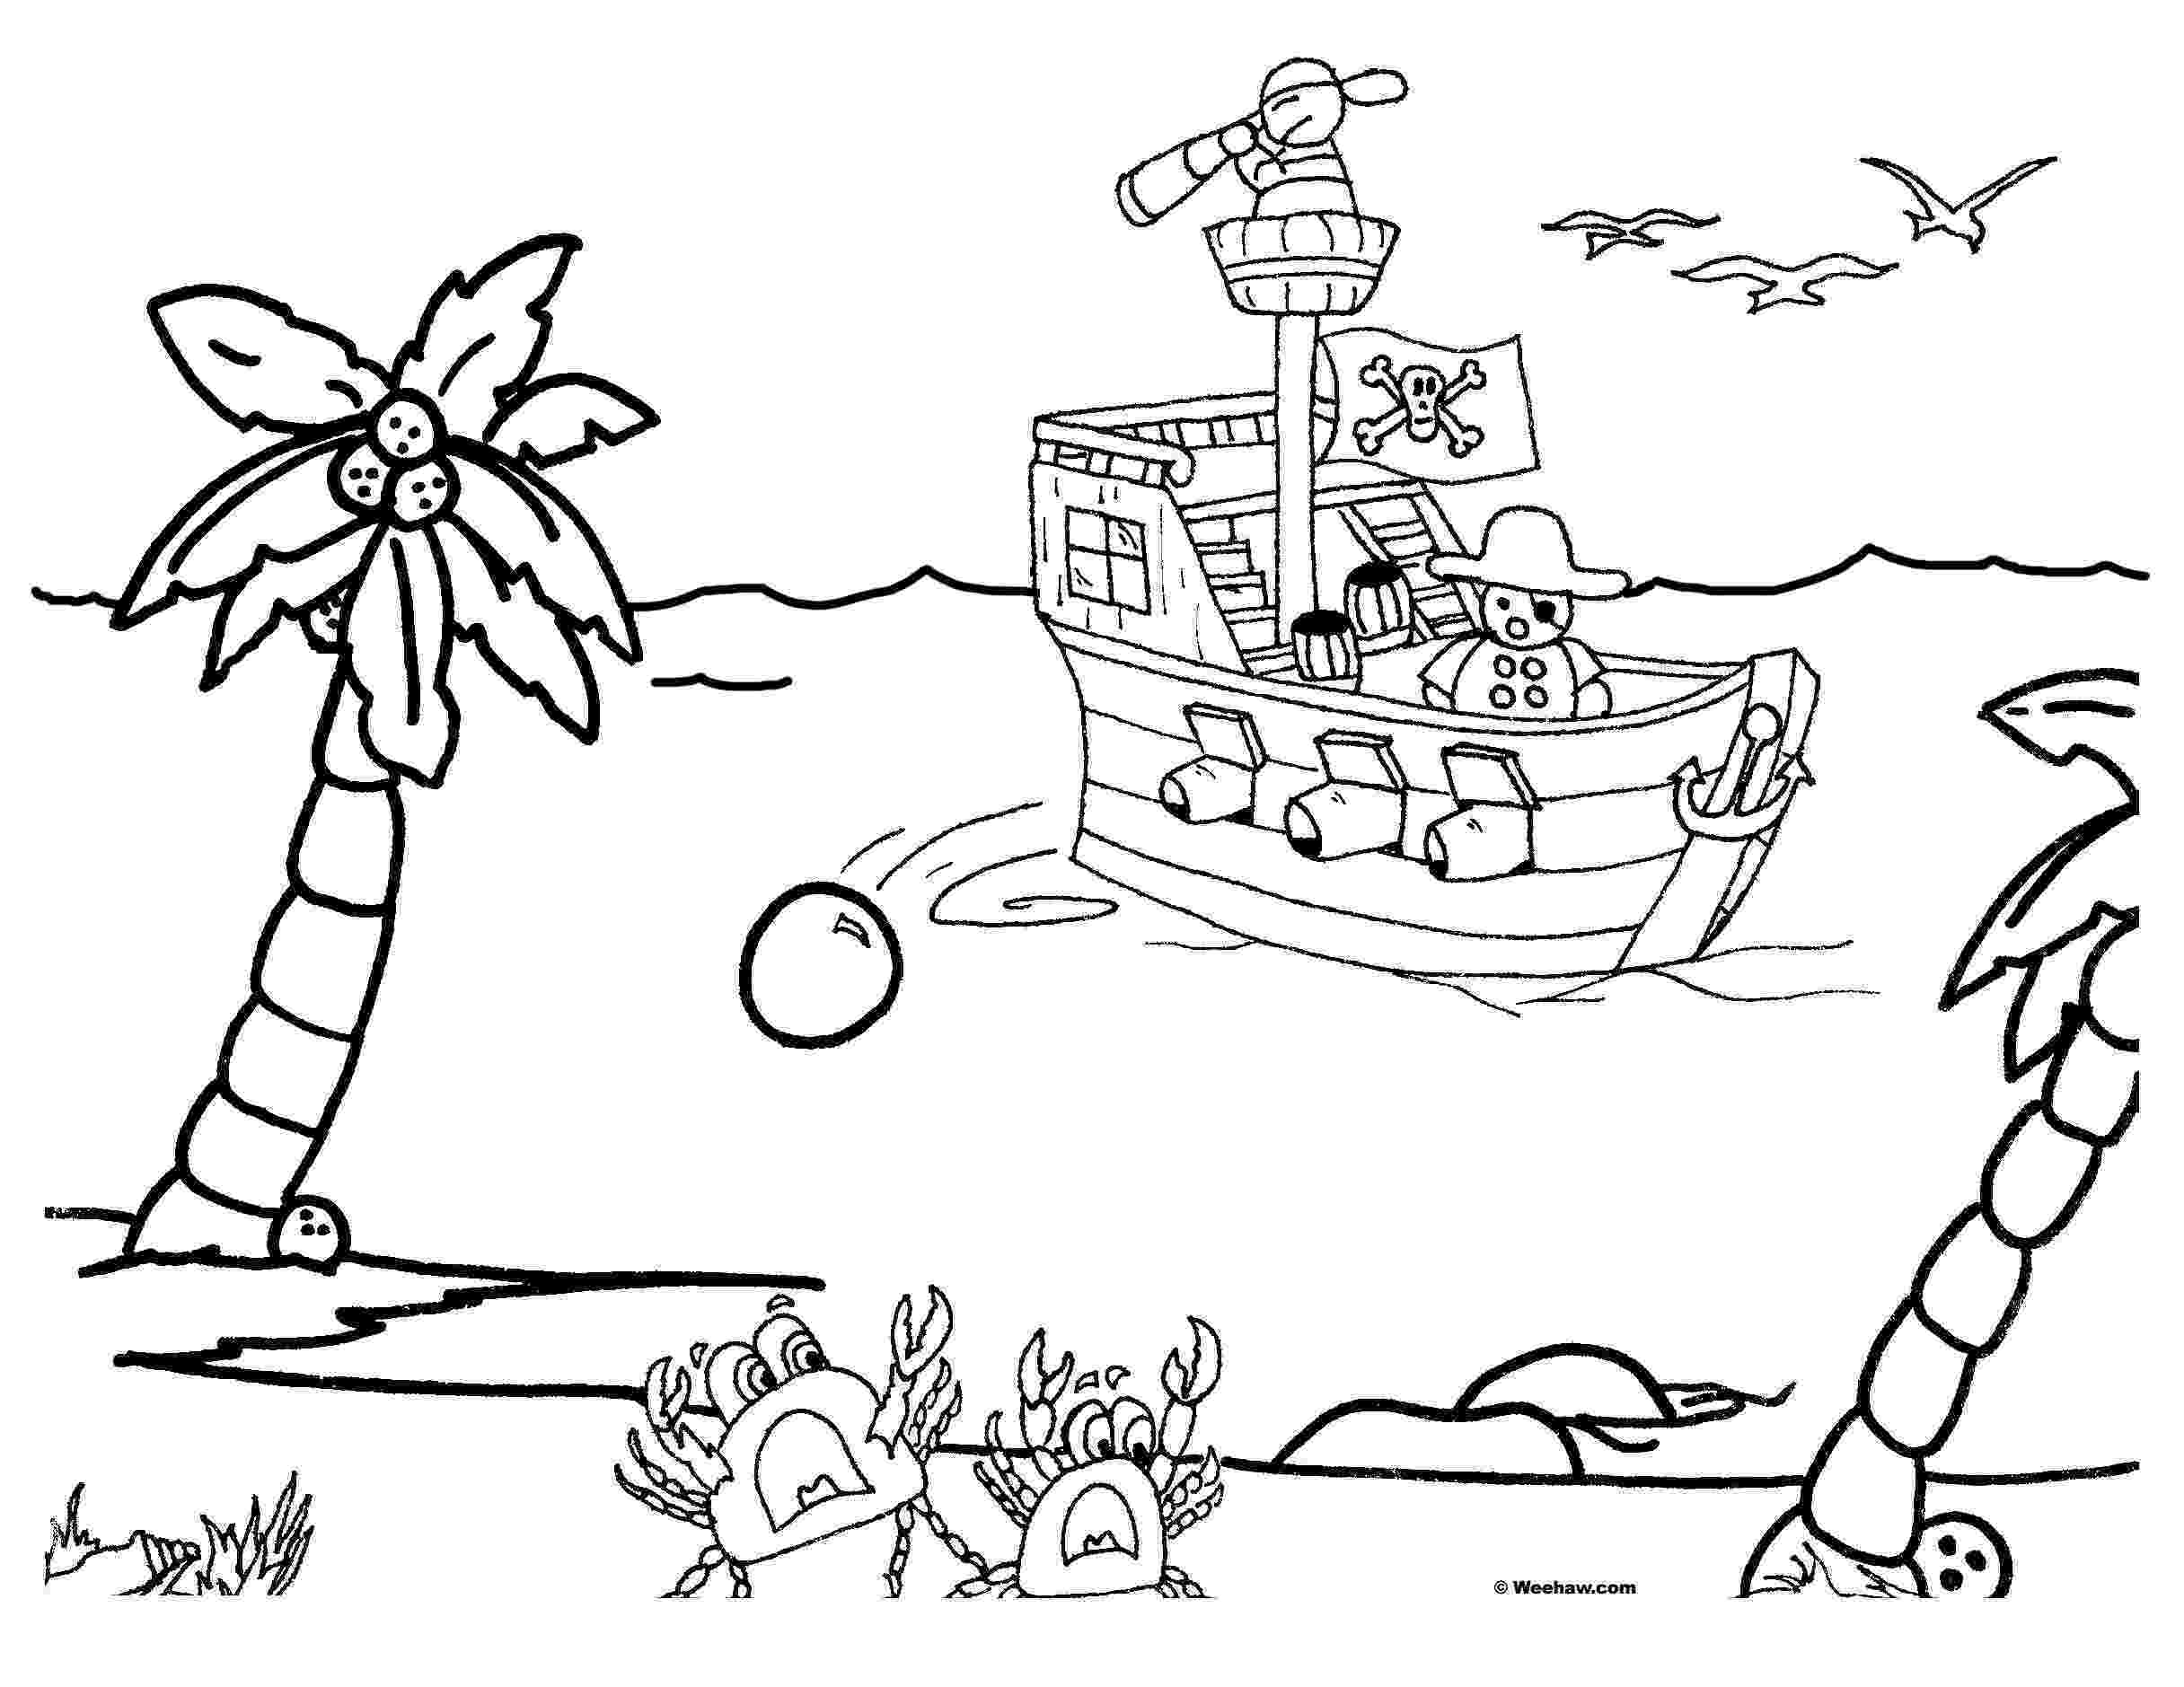 pirate coloring pages for kids free printable pirate coloring pages for kids coloring kids for pages pirate